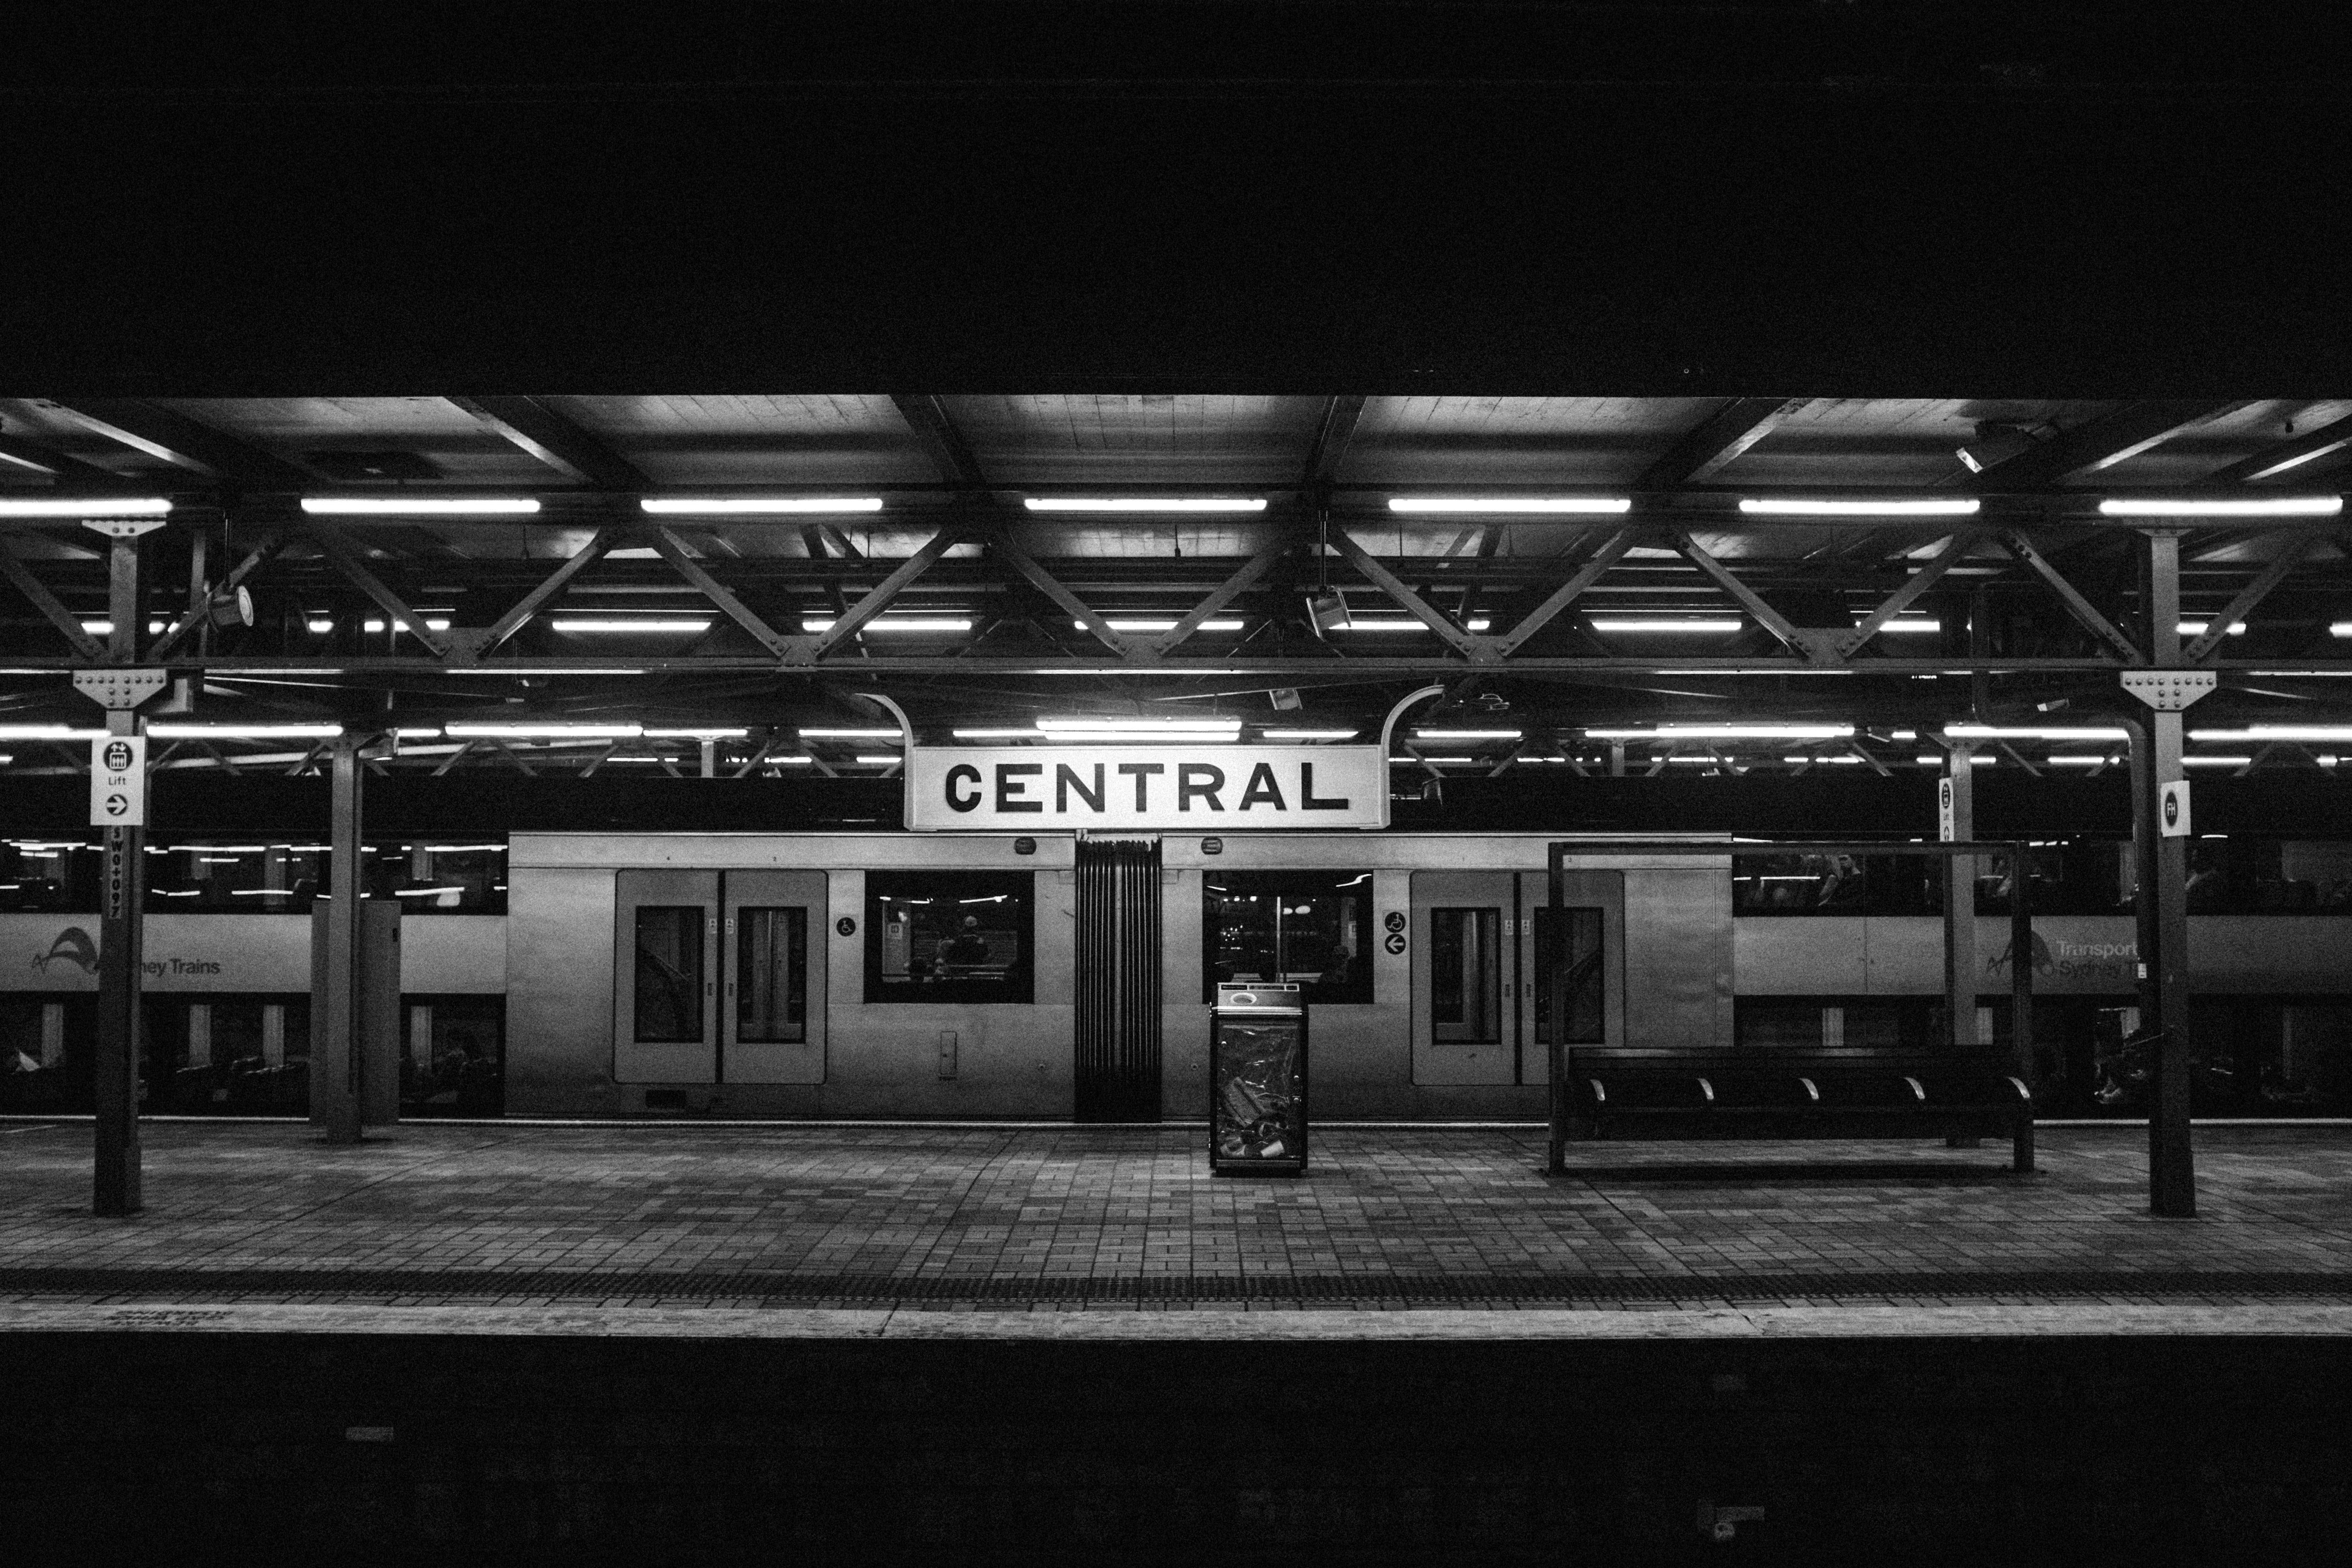 """Train station in black and white at night with the sign """"CENTRAL"""""""